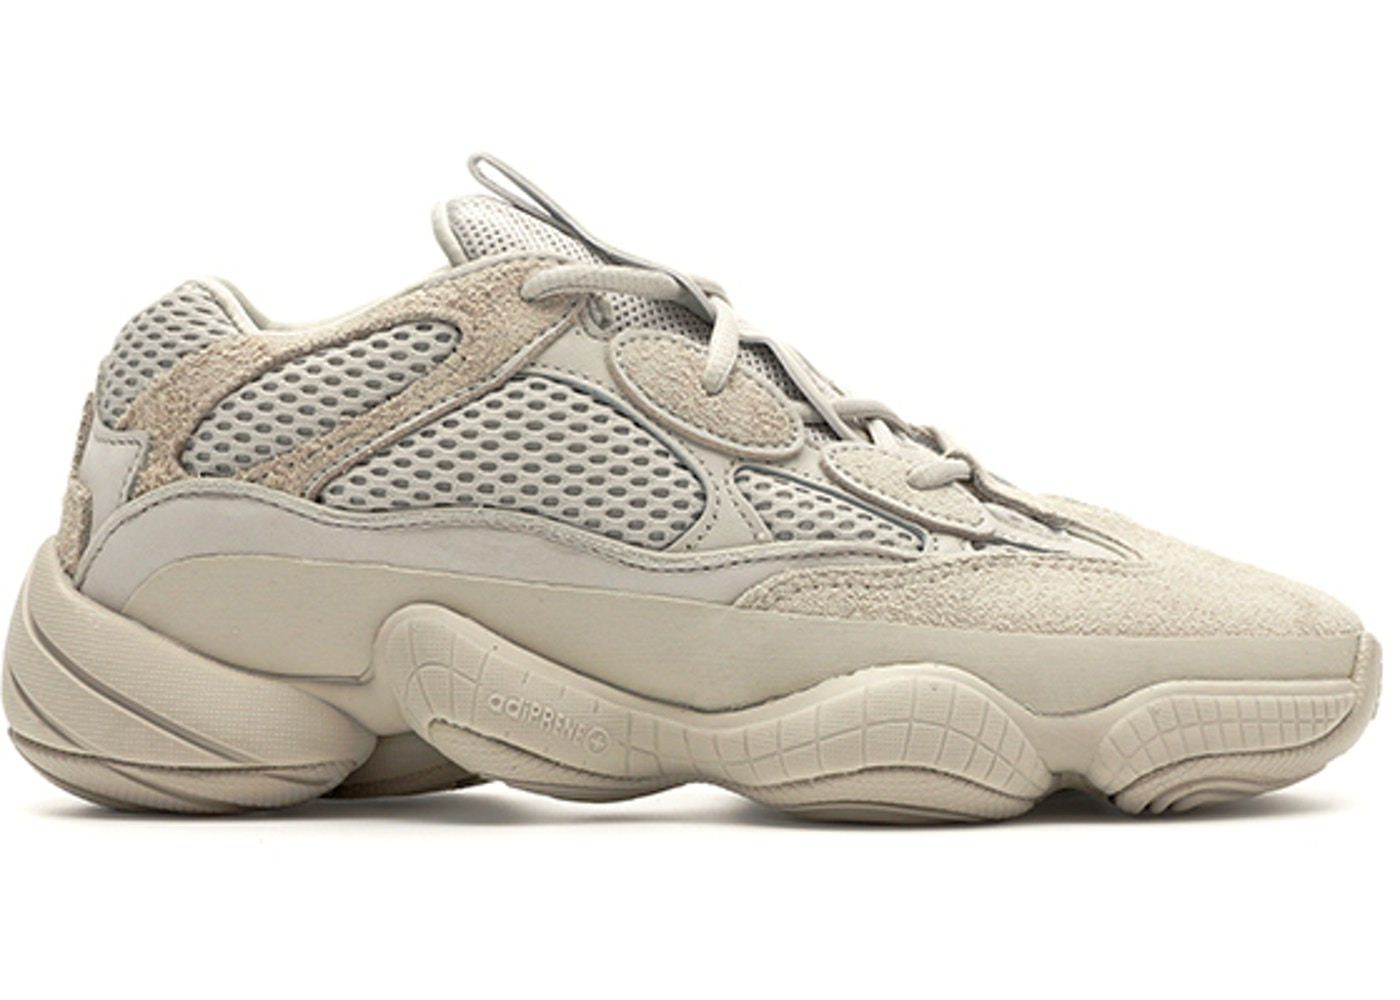 best sneakers 7b8f9 44588 adidas Yeezy 500 Blush - DB2908